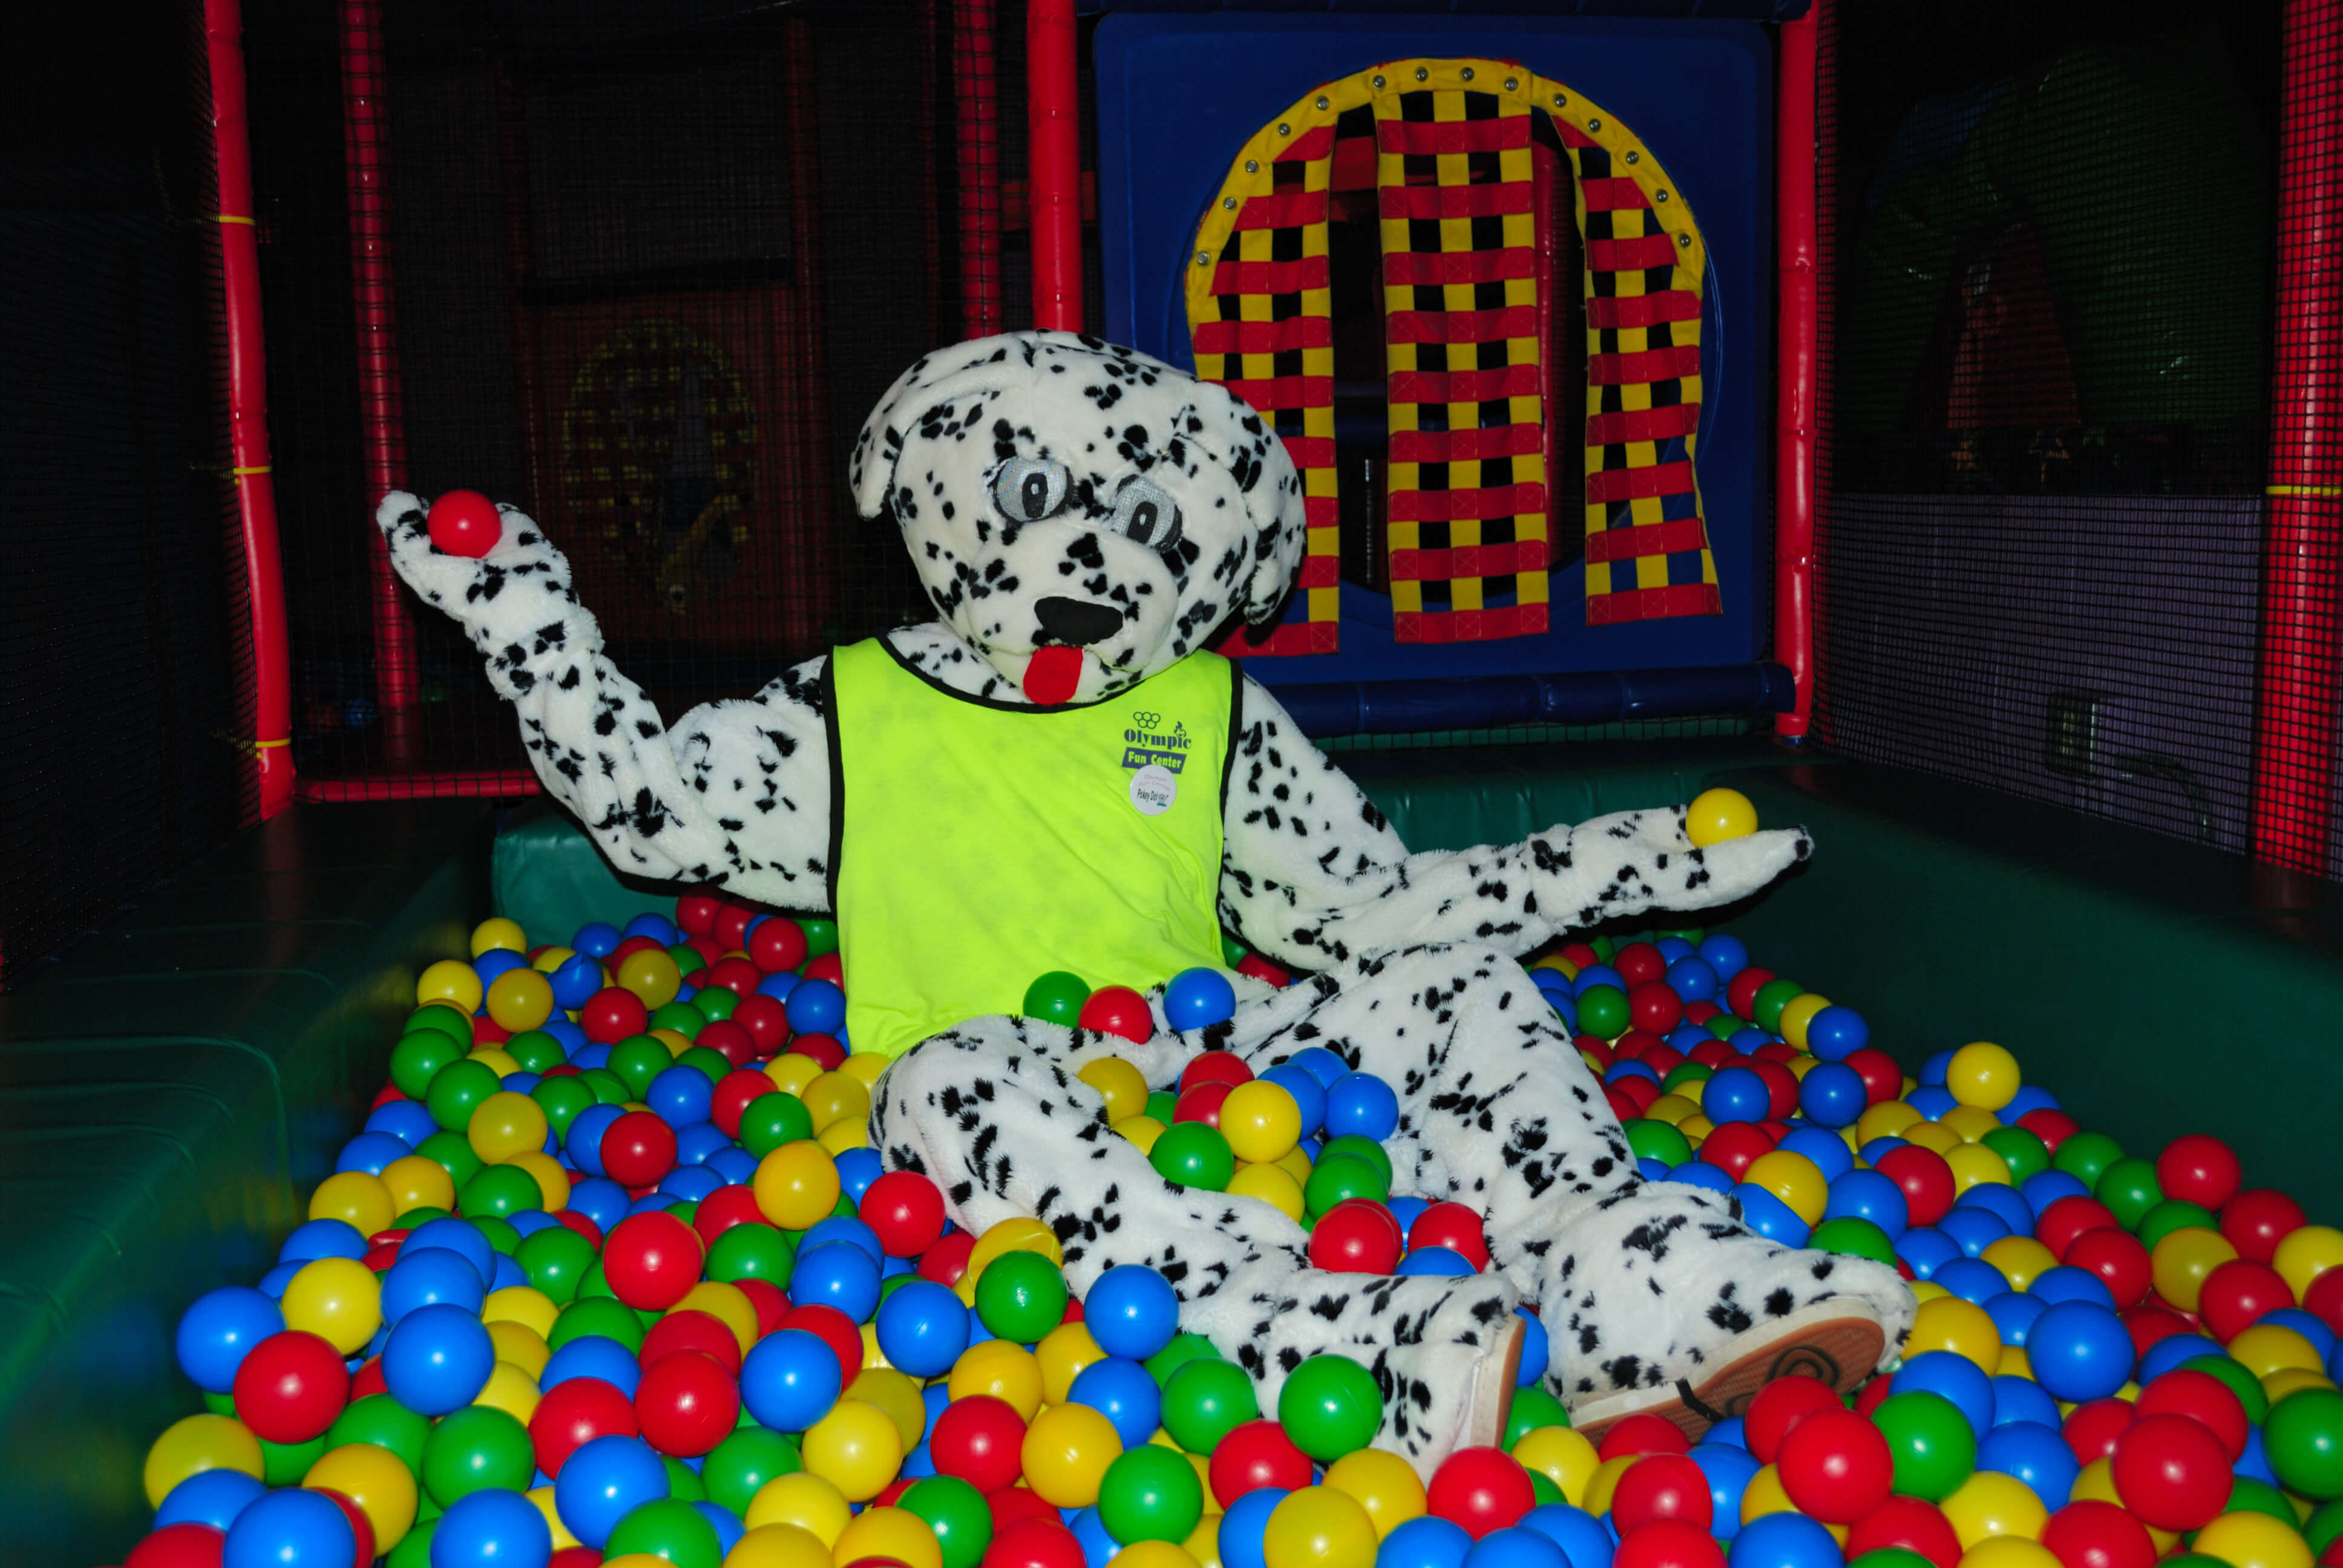 Play Area, Toddler Fun, Family Fun, Ball Pit, Slides, Tubes